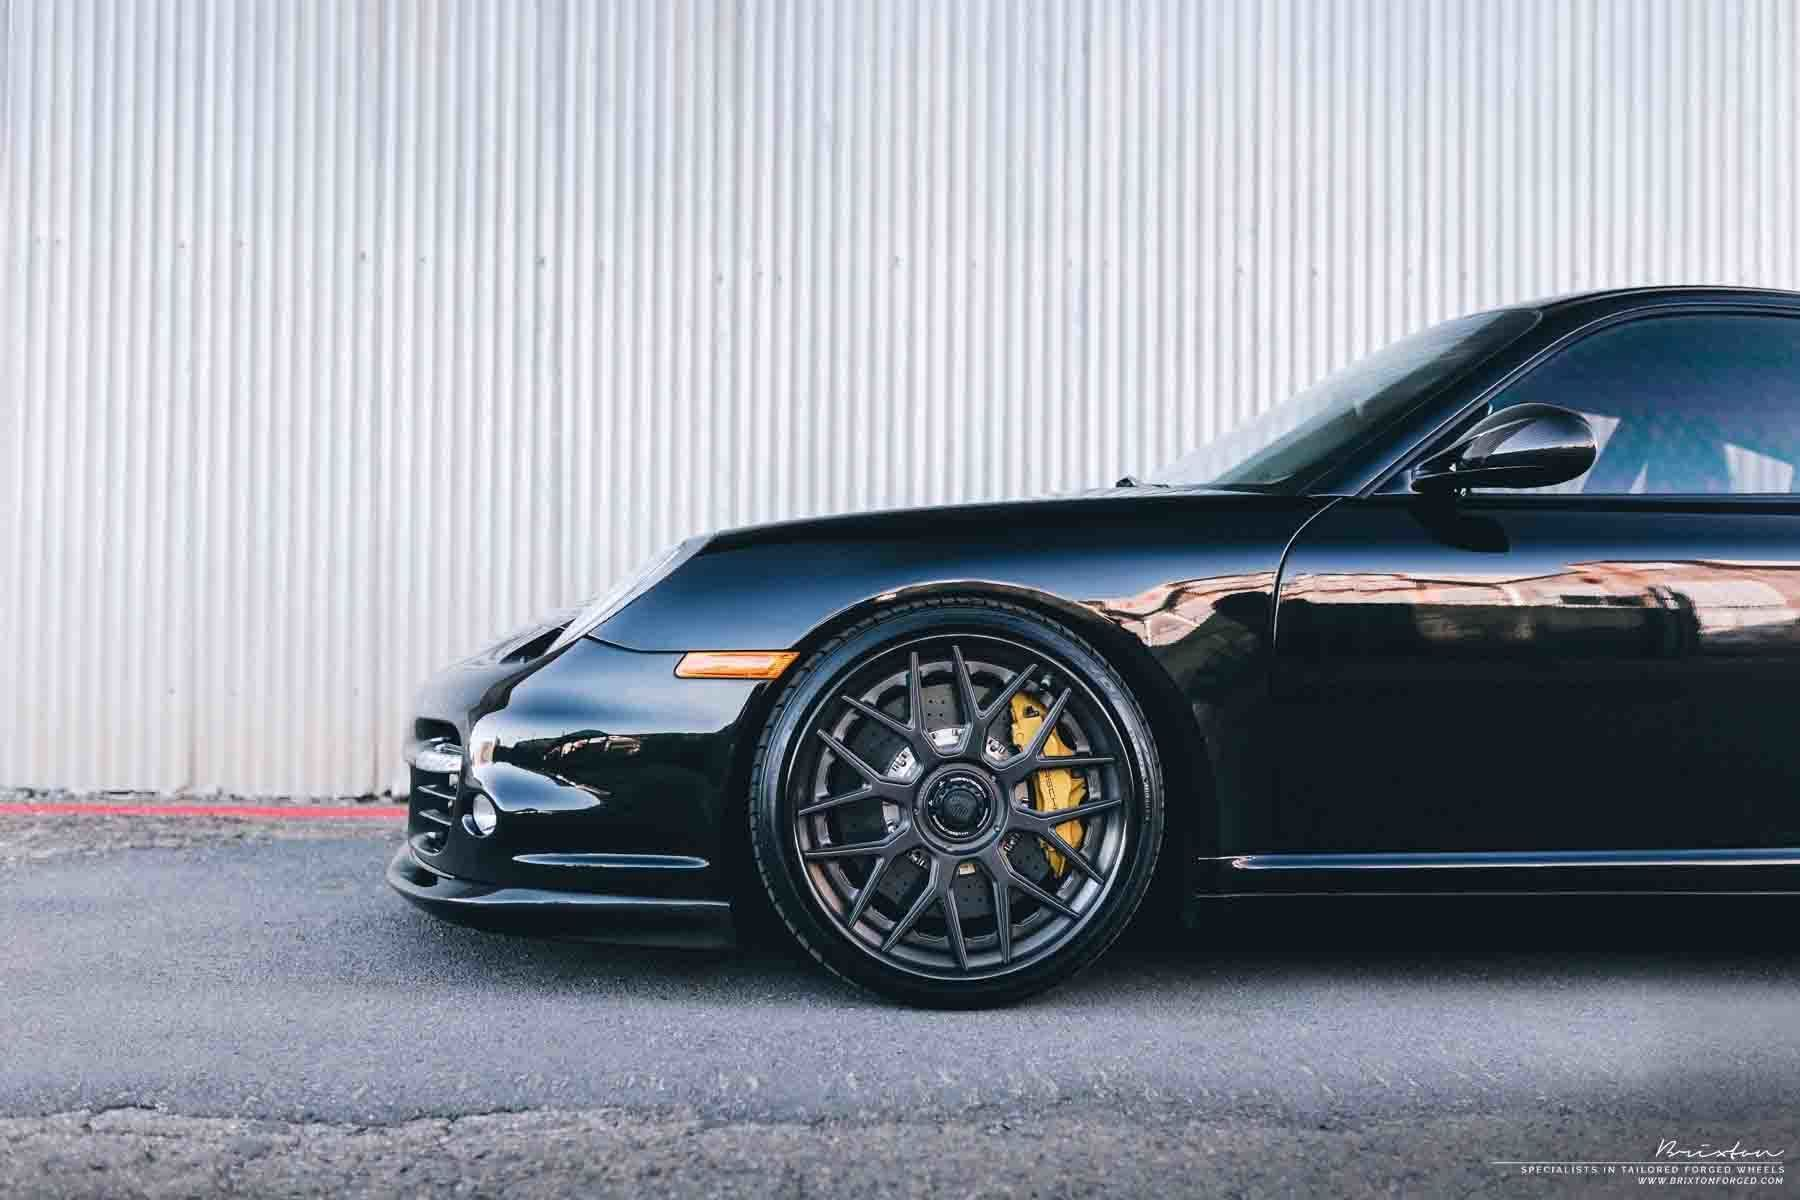 images-products-1-2712-232975000-brixton-forged-wheels-black-porsche-997-turbo-wheels-brixton-forged-cm16-targa-series-3-piece-co.jpg